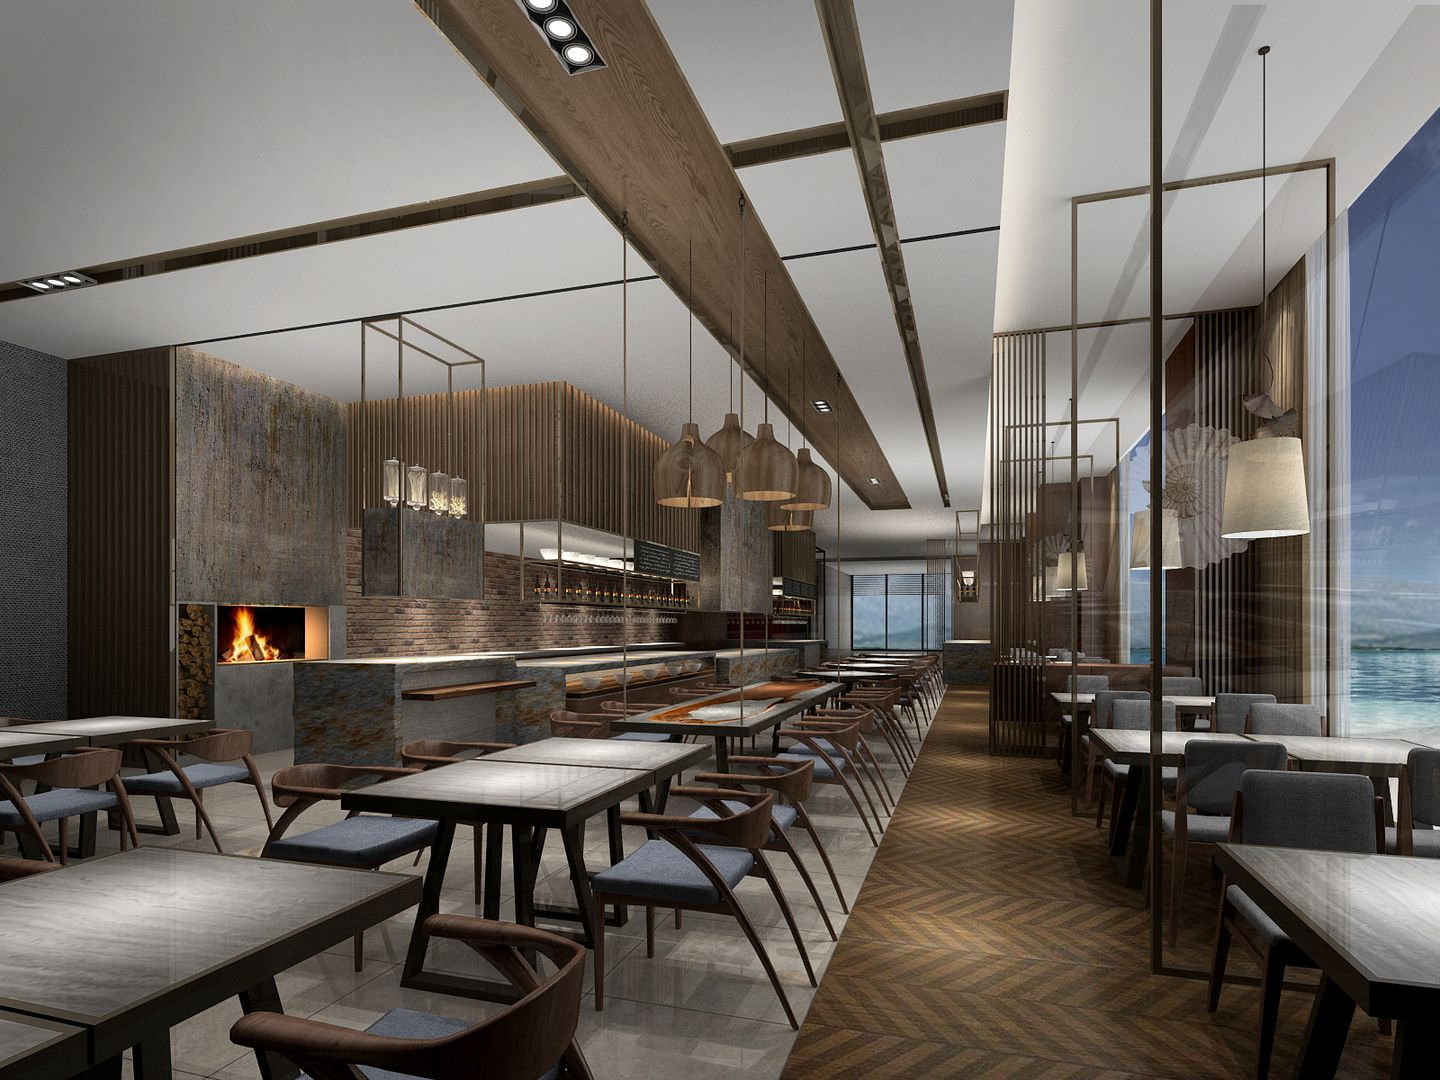 020e528331fe6a068e78adbd3d8e76d5 1 440 1 080 pixels - Interior design for hotels and restaurants ...